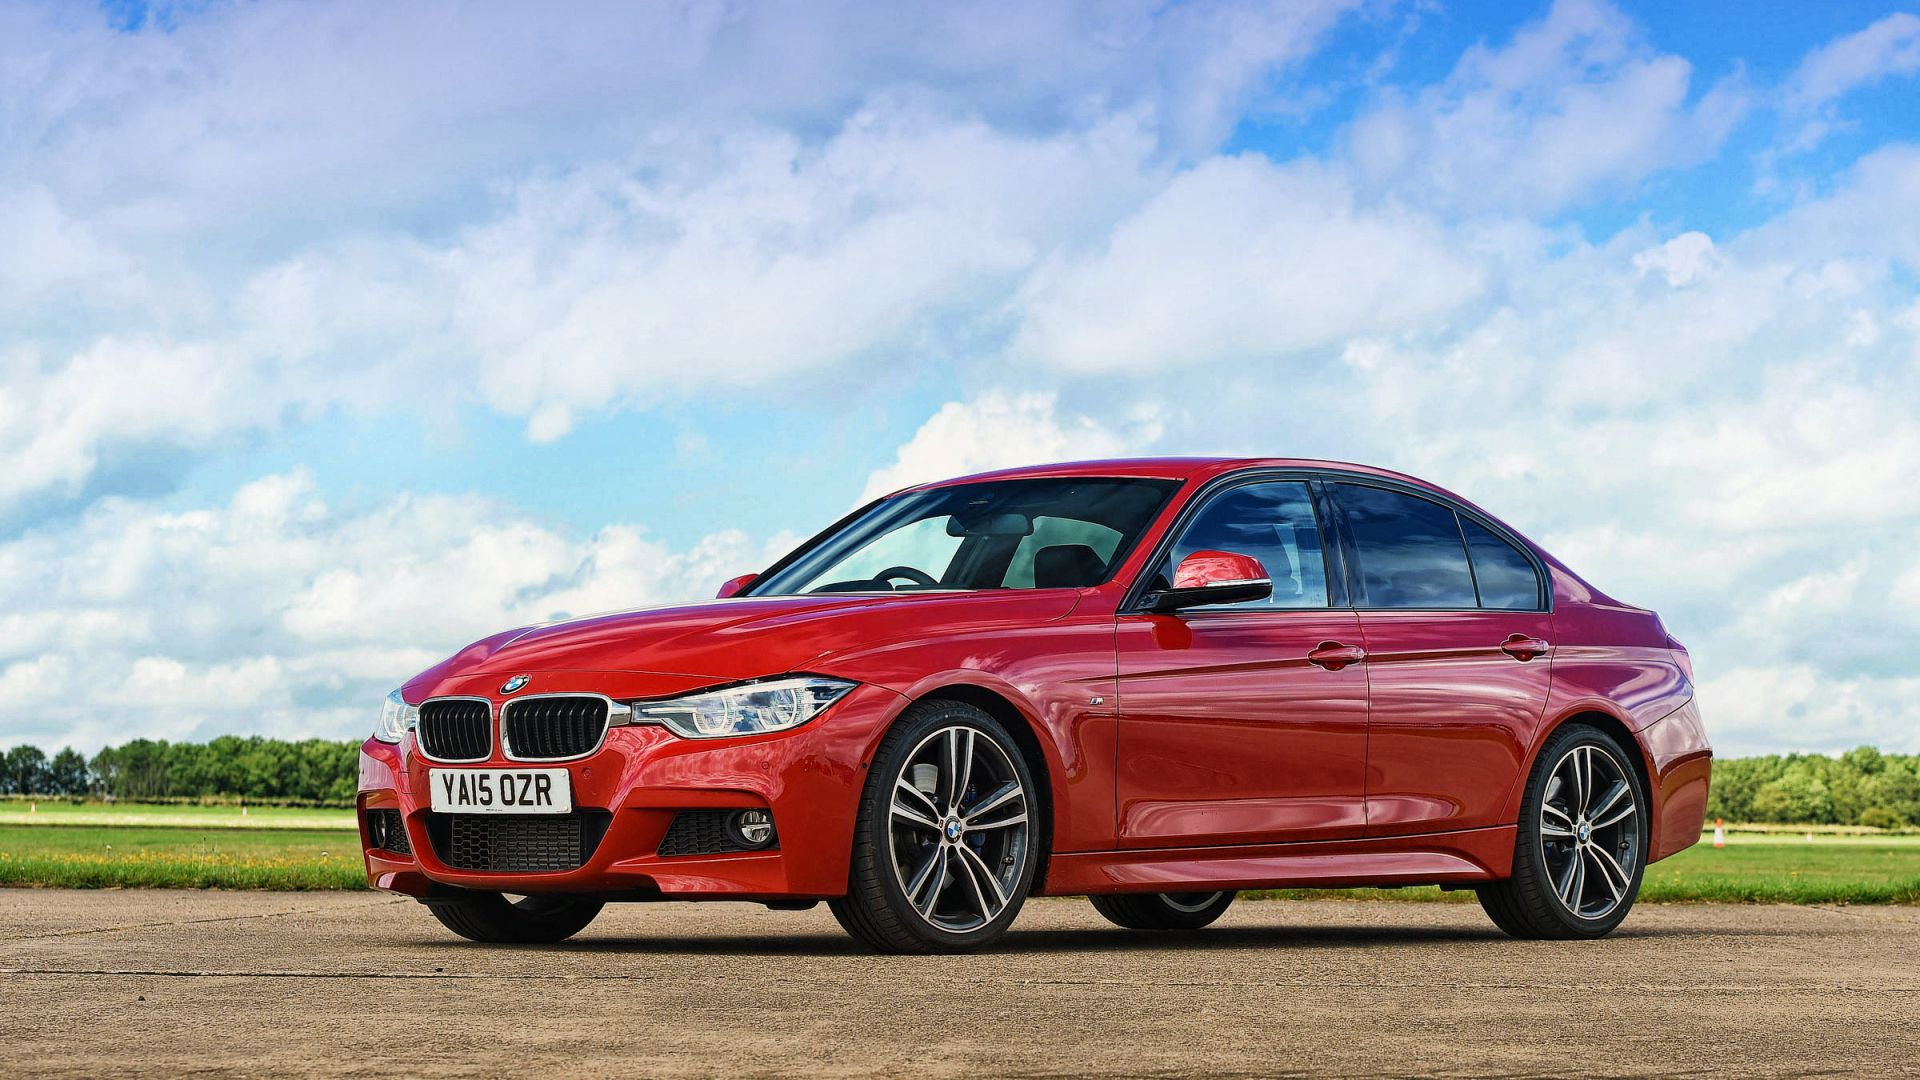 Wallpaper BMW 3 Series, red luxury car, side view